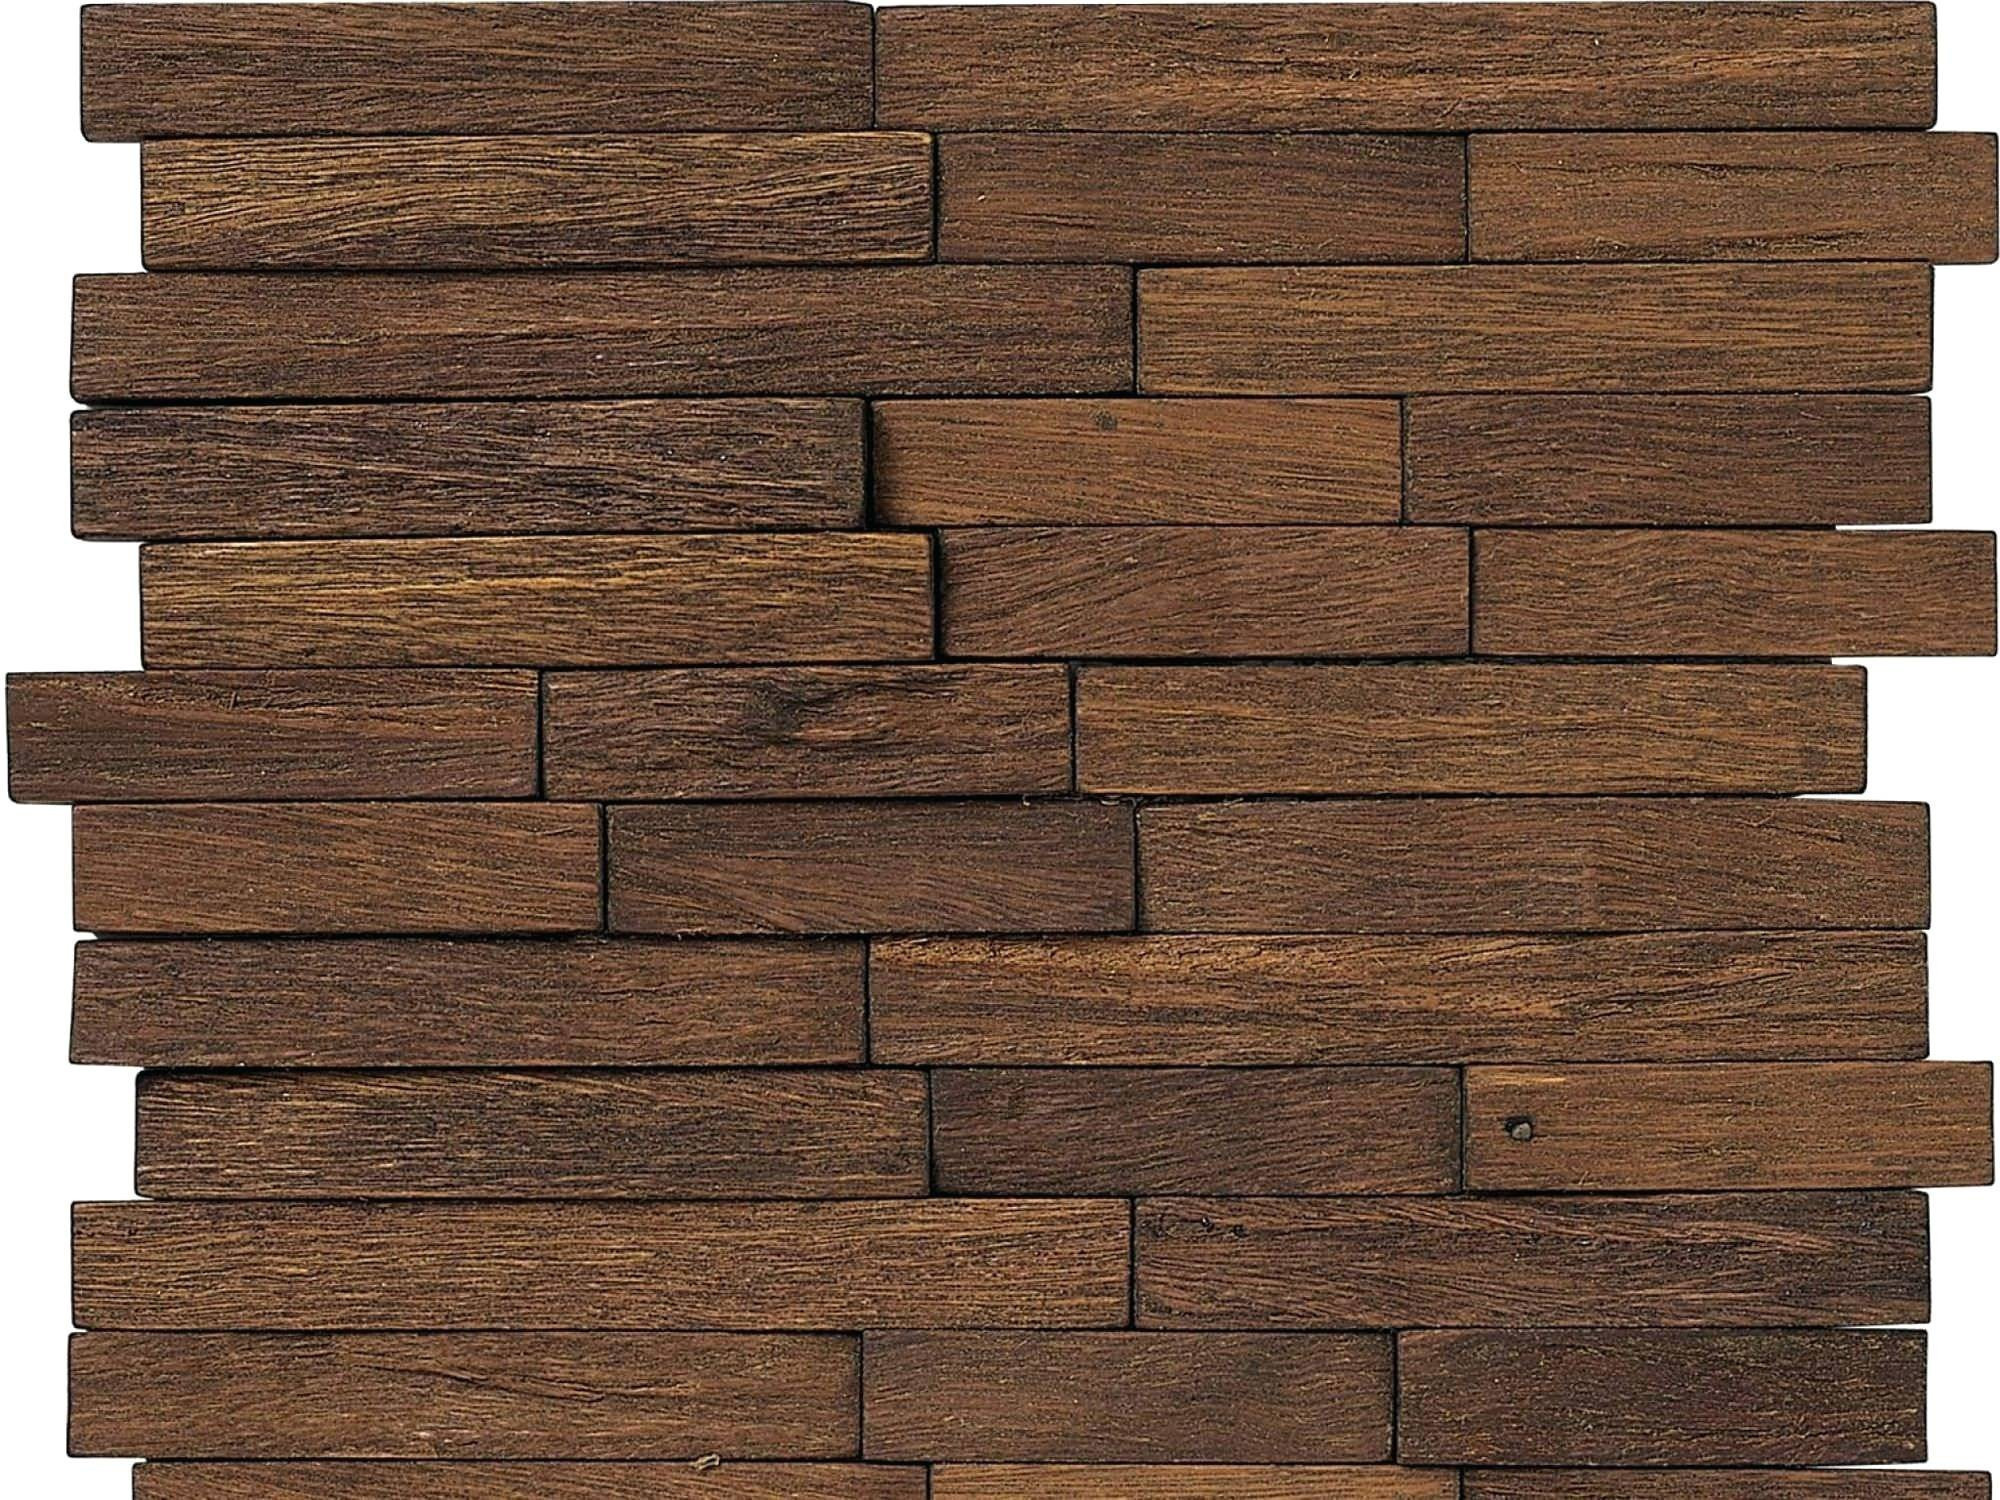 1 3 4 hardwood floors of the wood maker page 2 wood wallpaper for floor patterns new metal wall art panels fresh 1 kirkland wall decor home design 0d ideas of wood